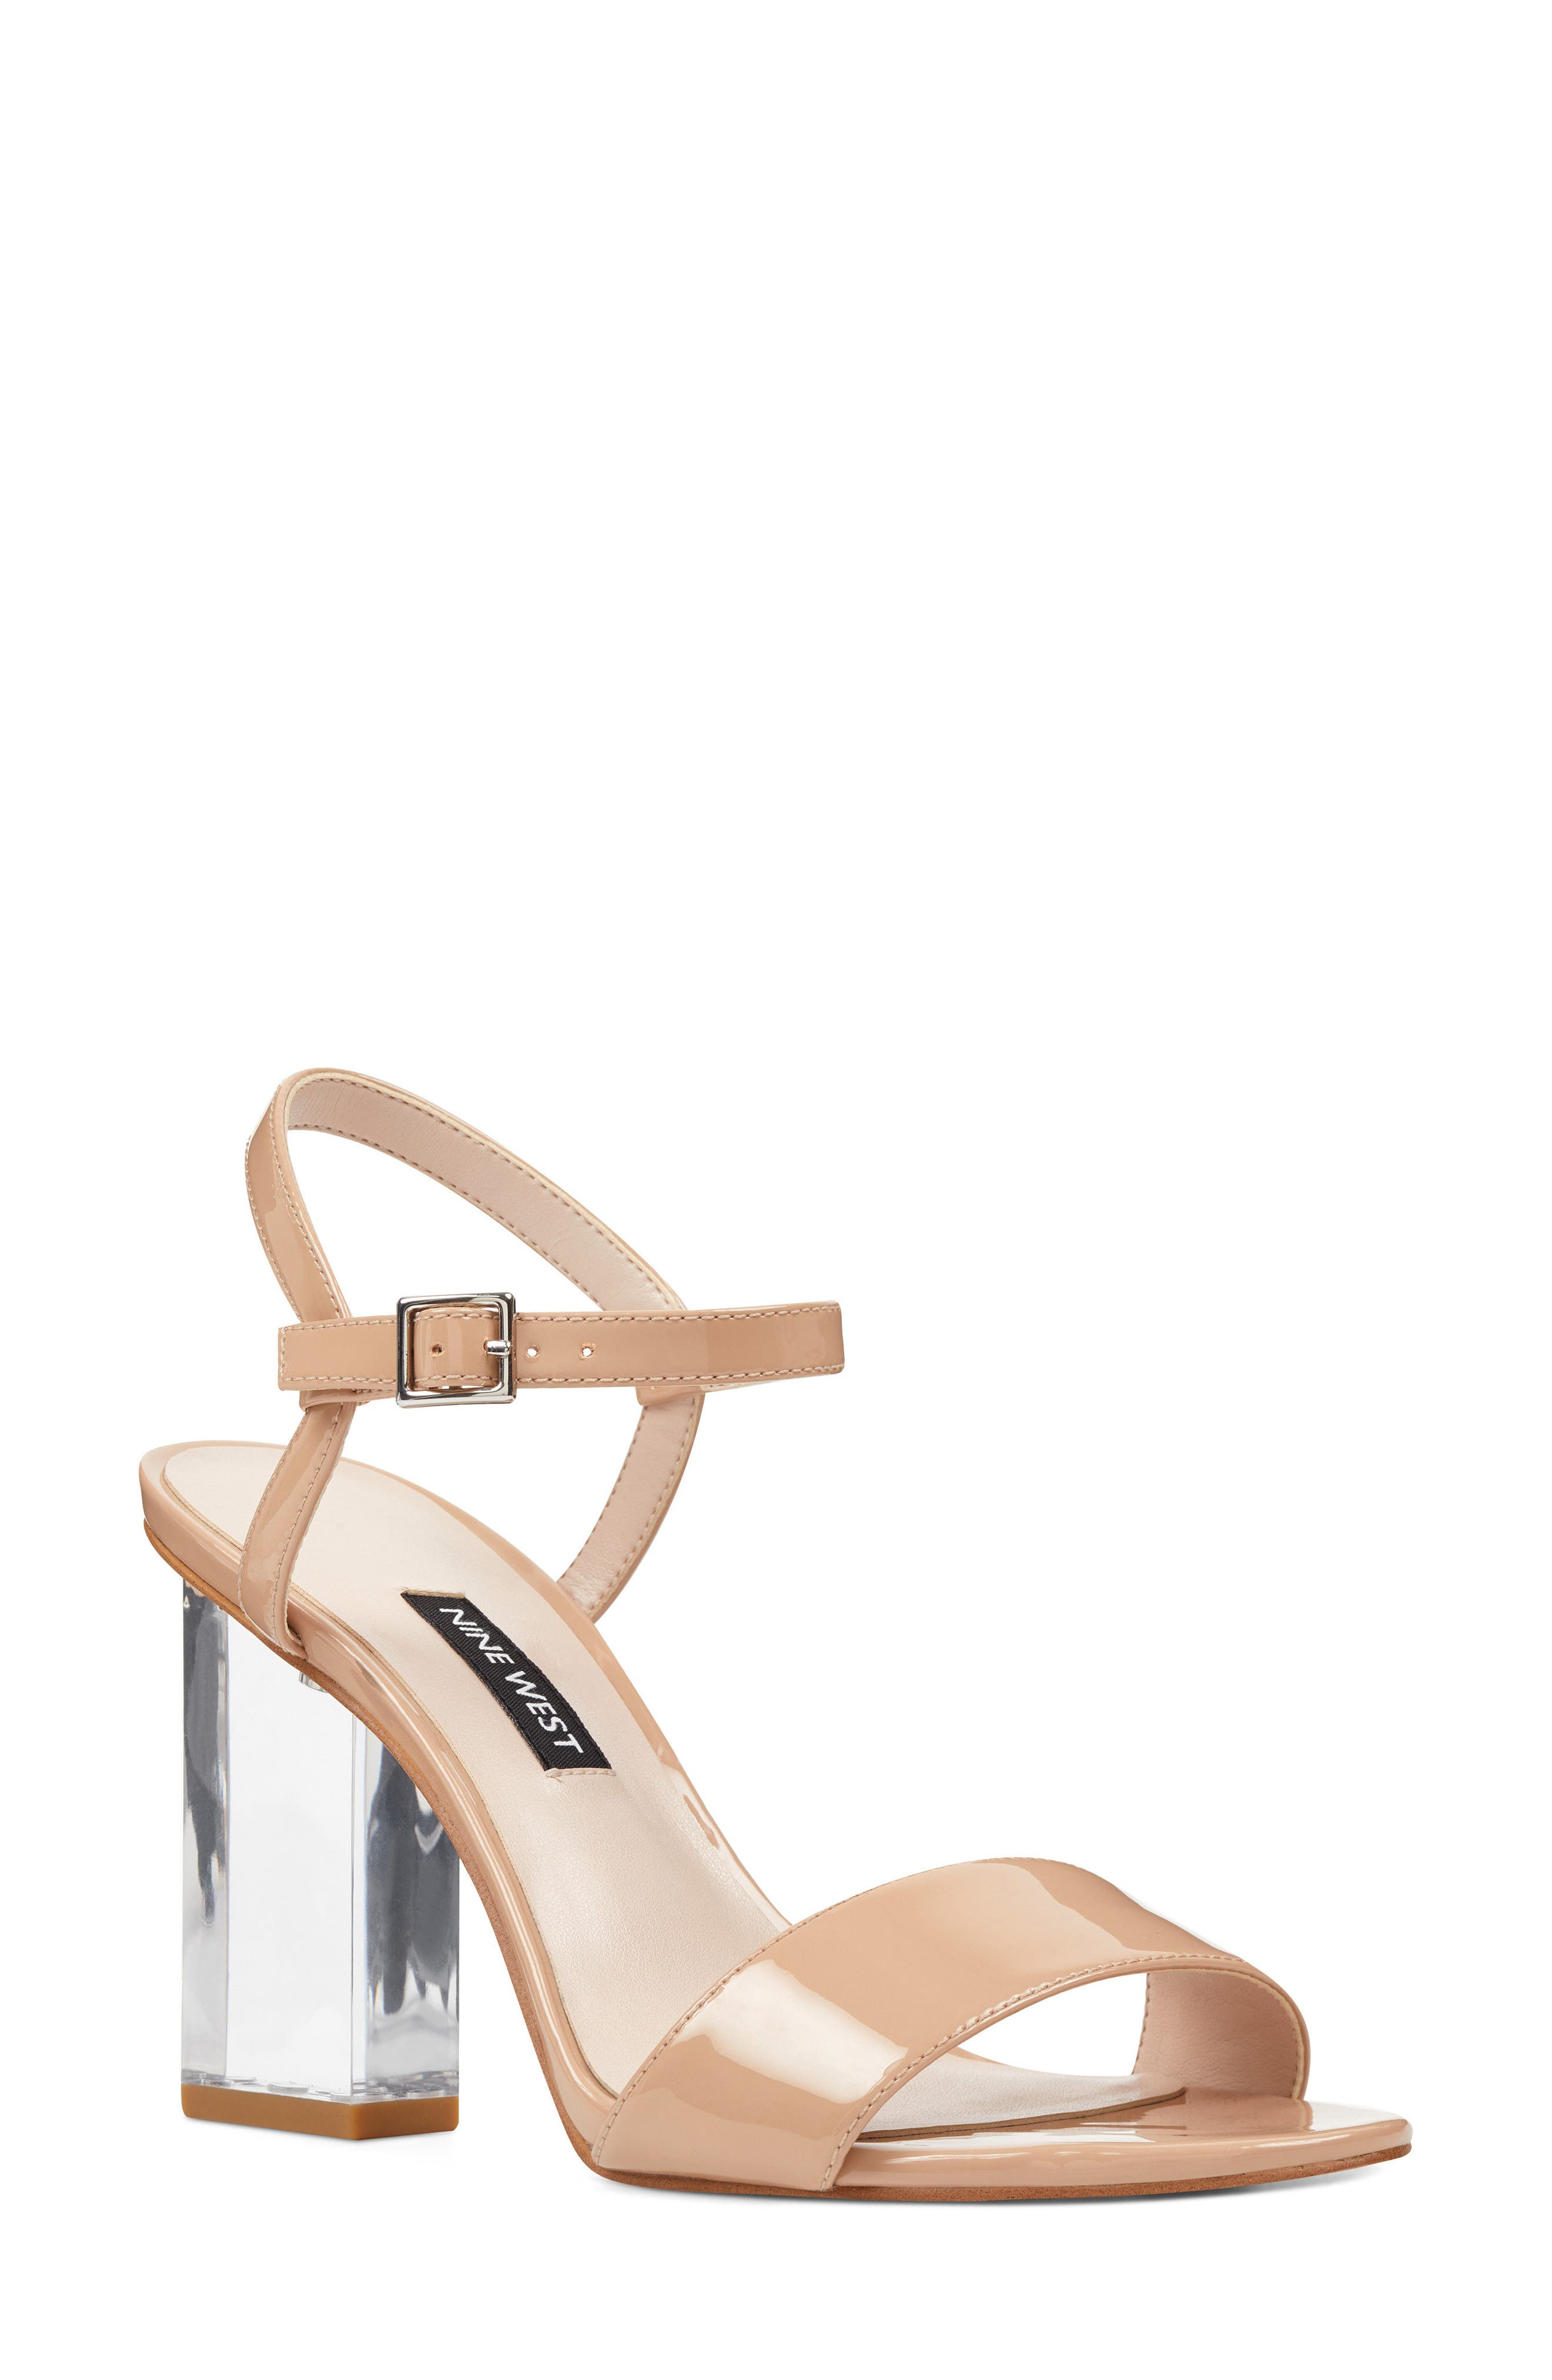 Feisty Ankle Strap Sandal,                         Main,                         color, Nude Suede